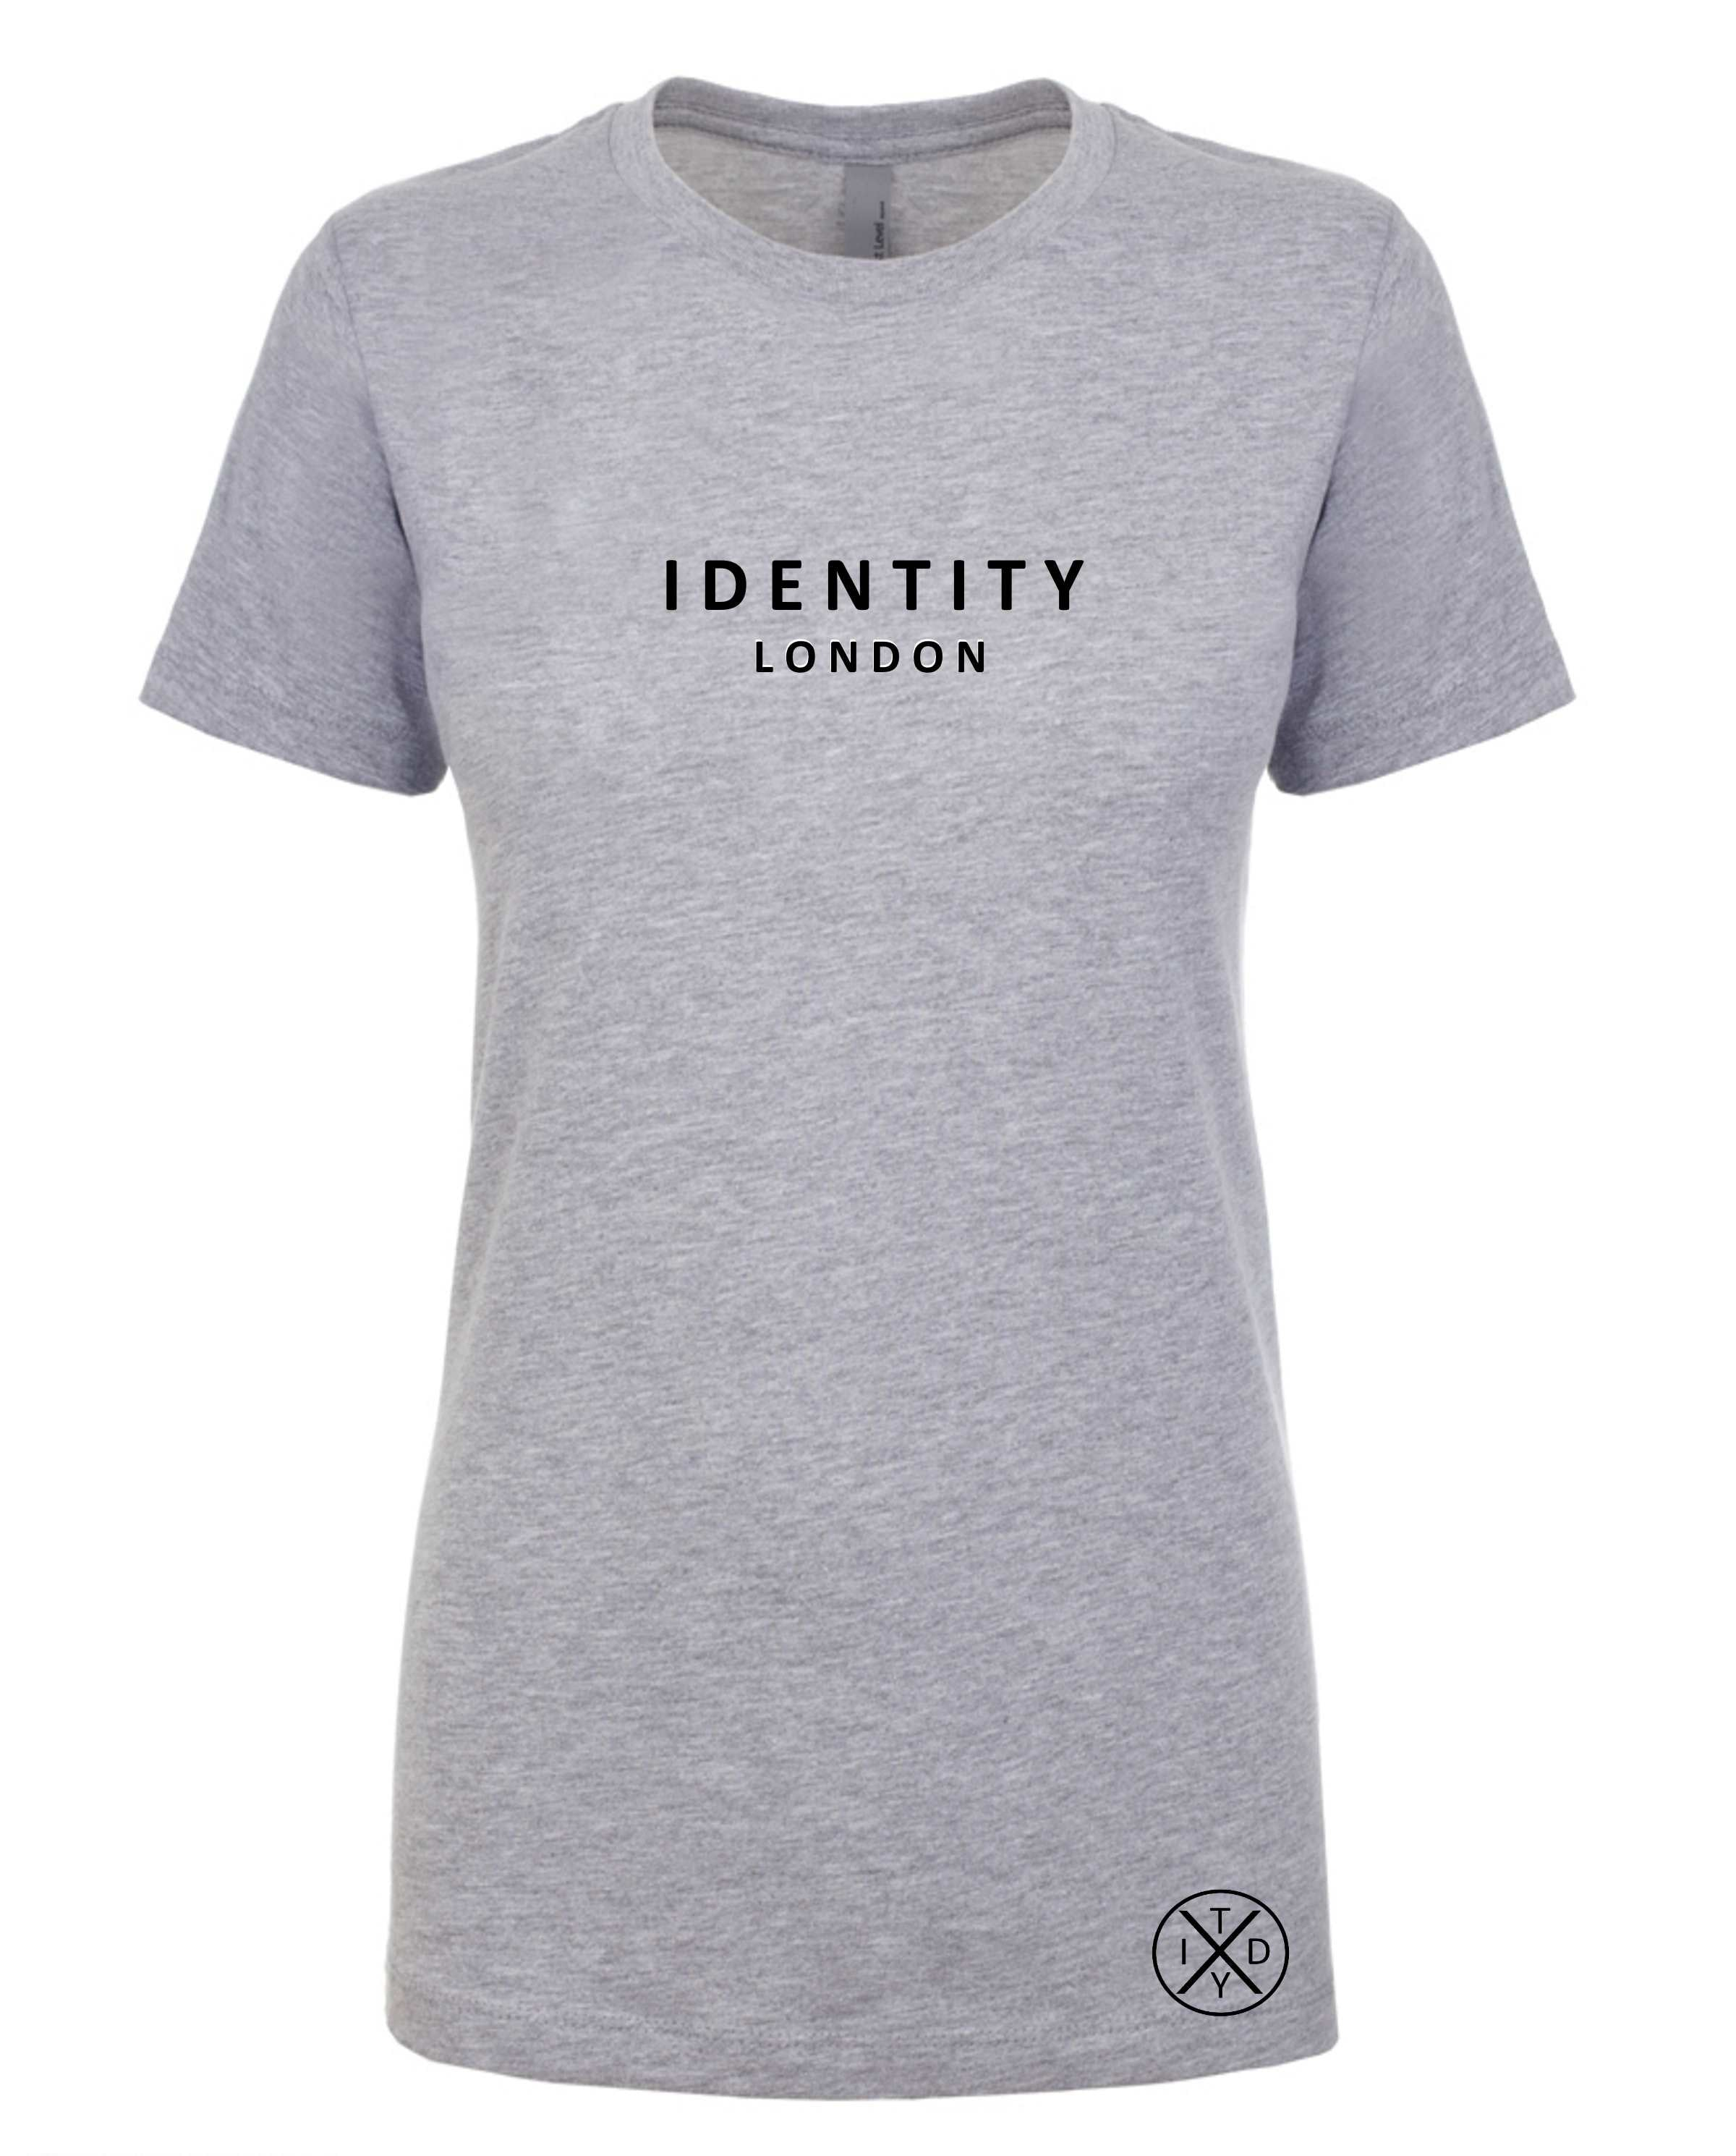 Womens Statement London T-Shirt (Grey)